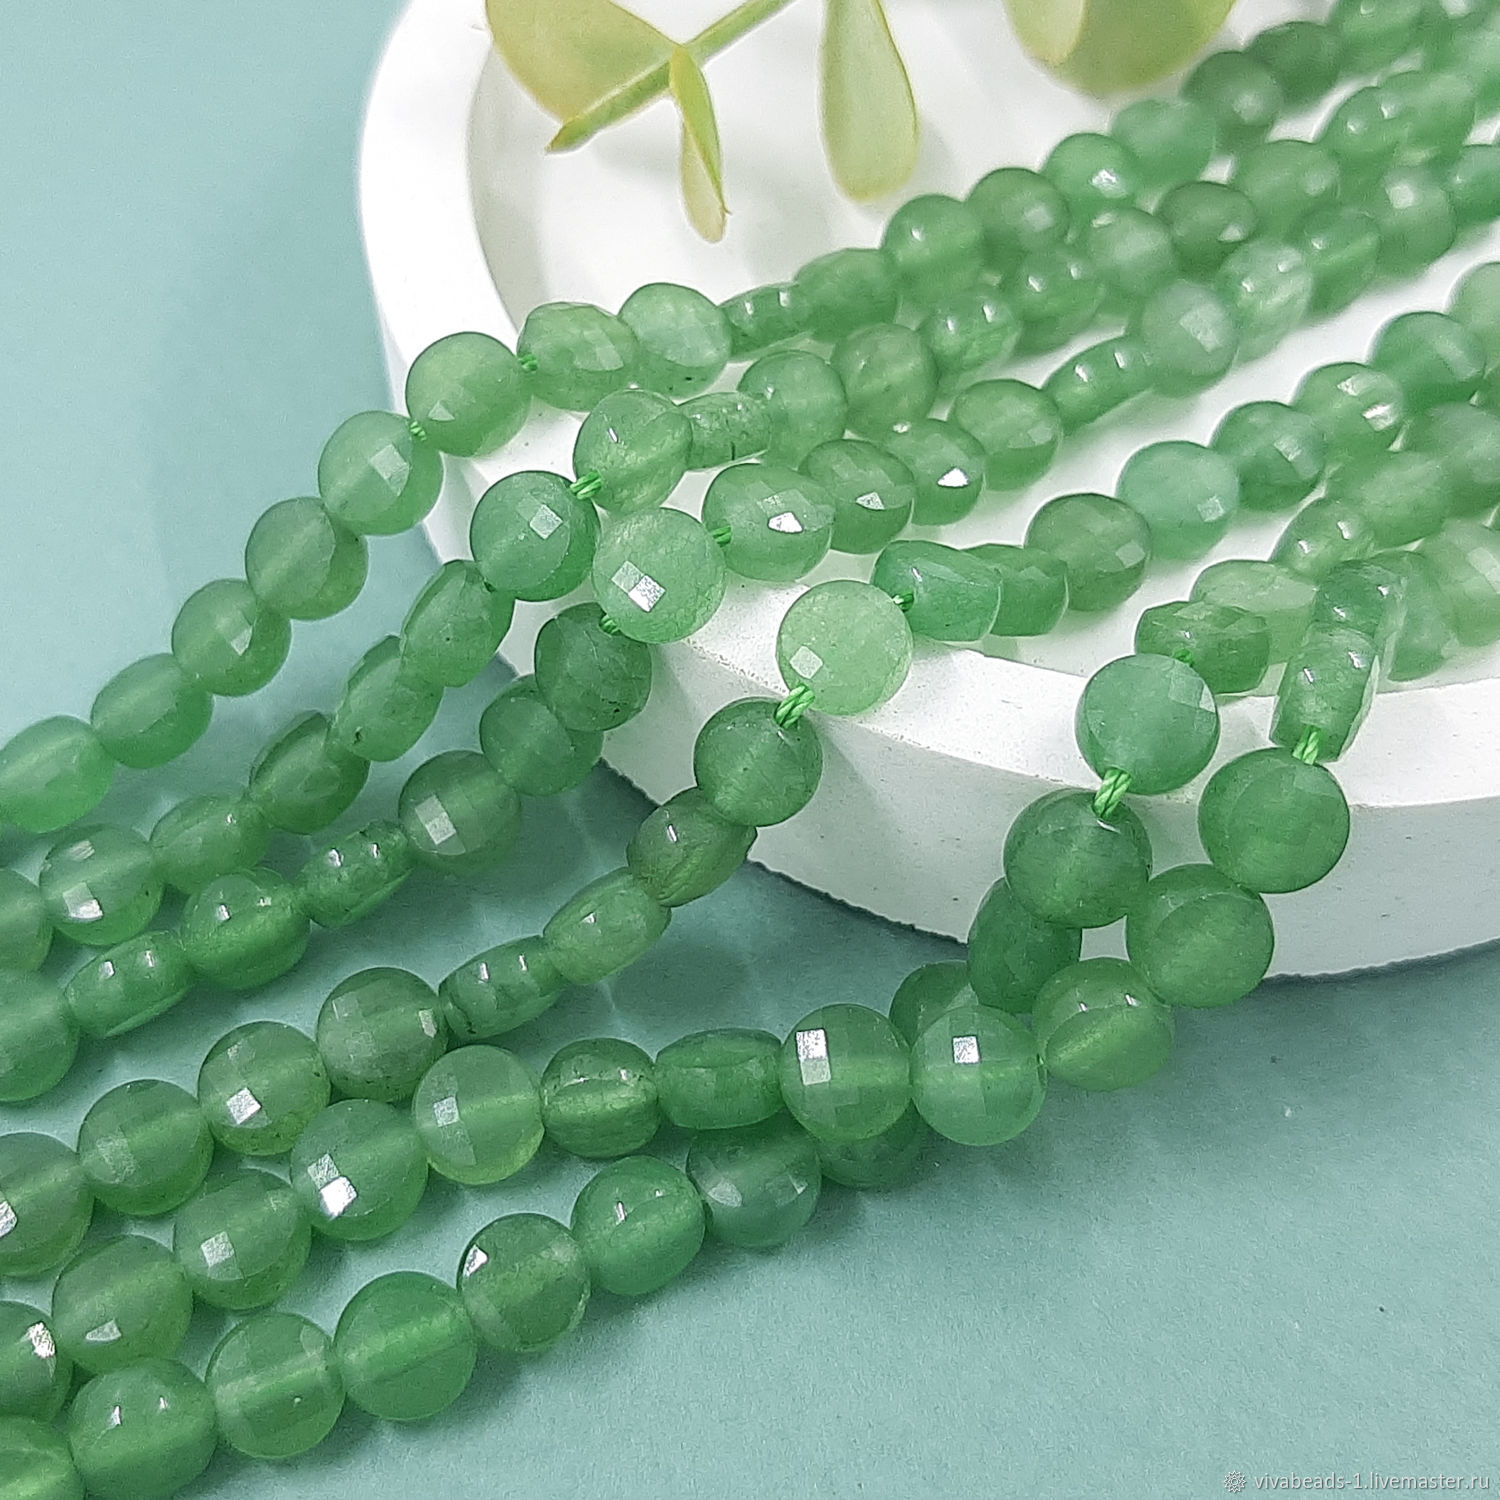 10 PCs. Aventurine natural faceted bead 6-7x4-4.5 mm (5473), Beads1, Voronezh,  Фото №1